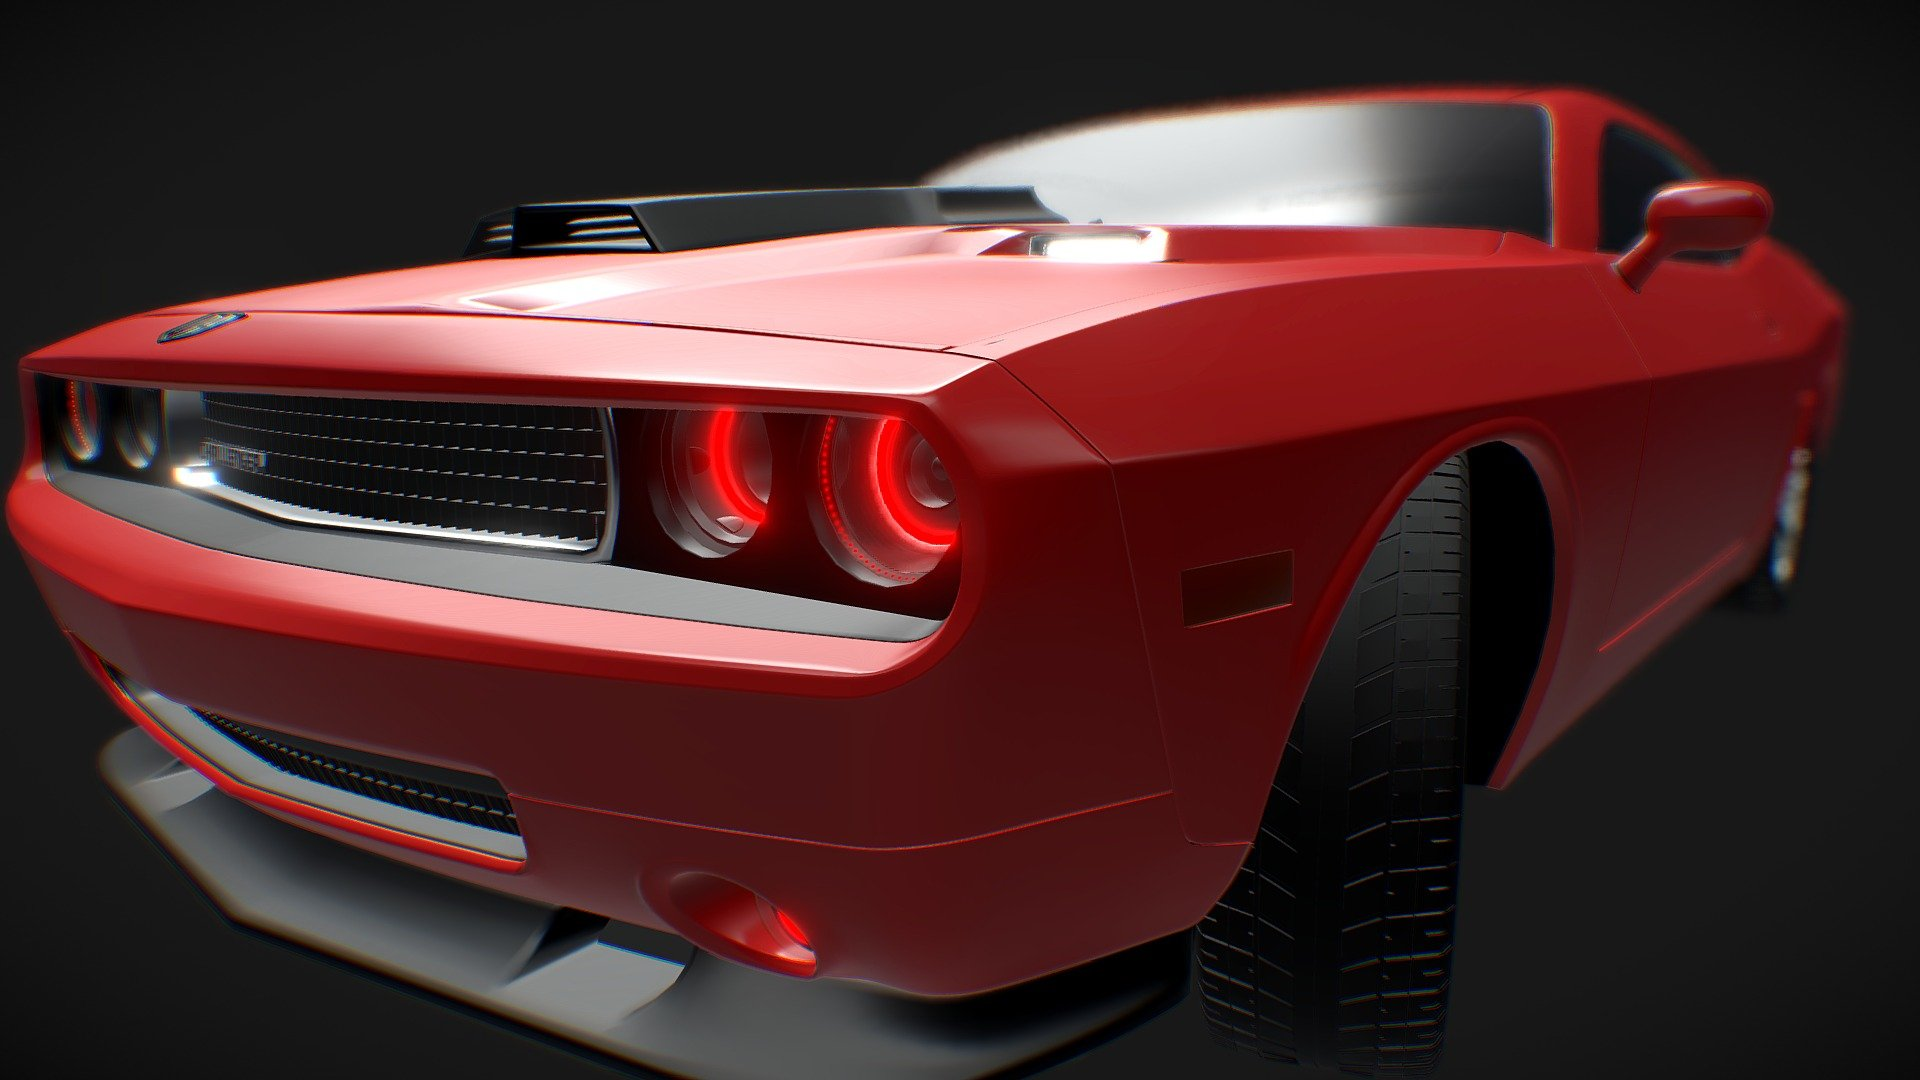 Dodge Challenger Download Free 3d Model By Gesy Mrgesy 2c1f18d Sketchfab